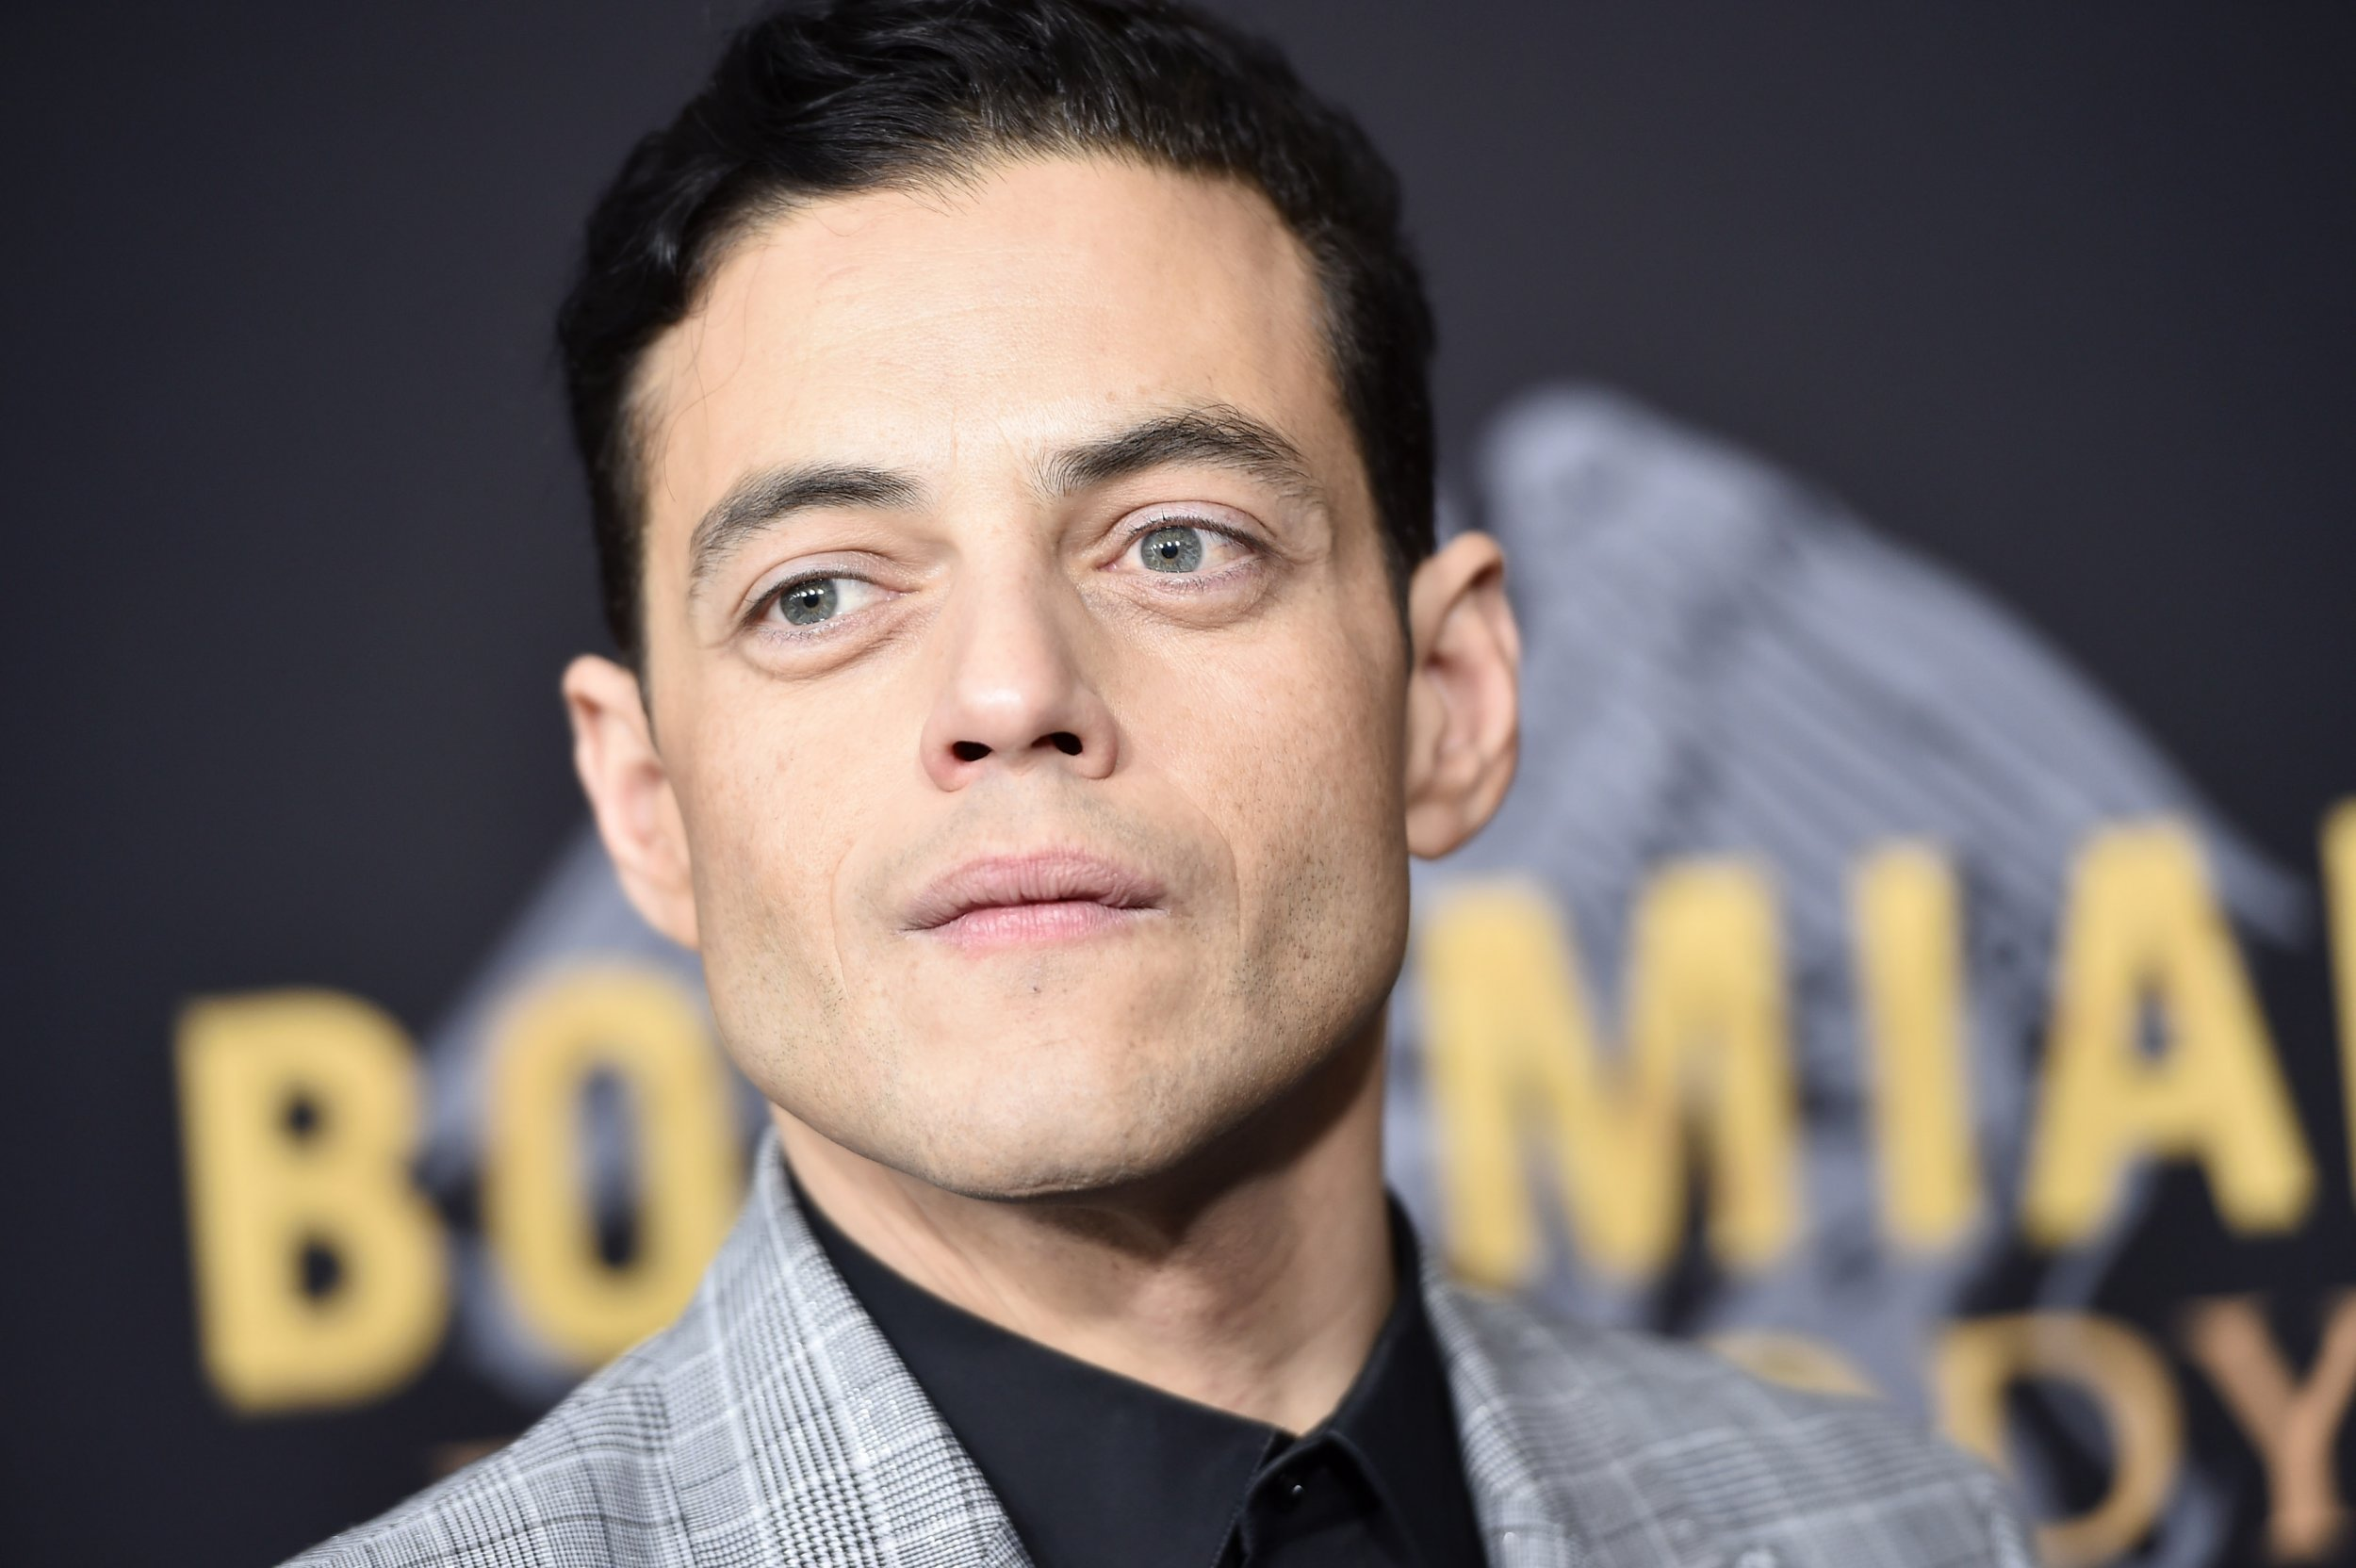 Rami Malek breaks silence on sexual abuse allegations